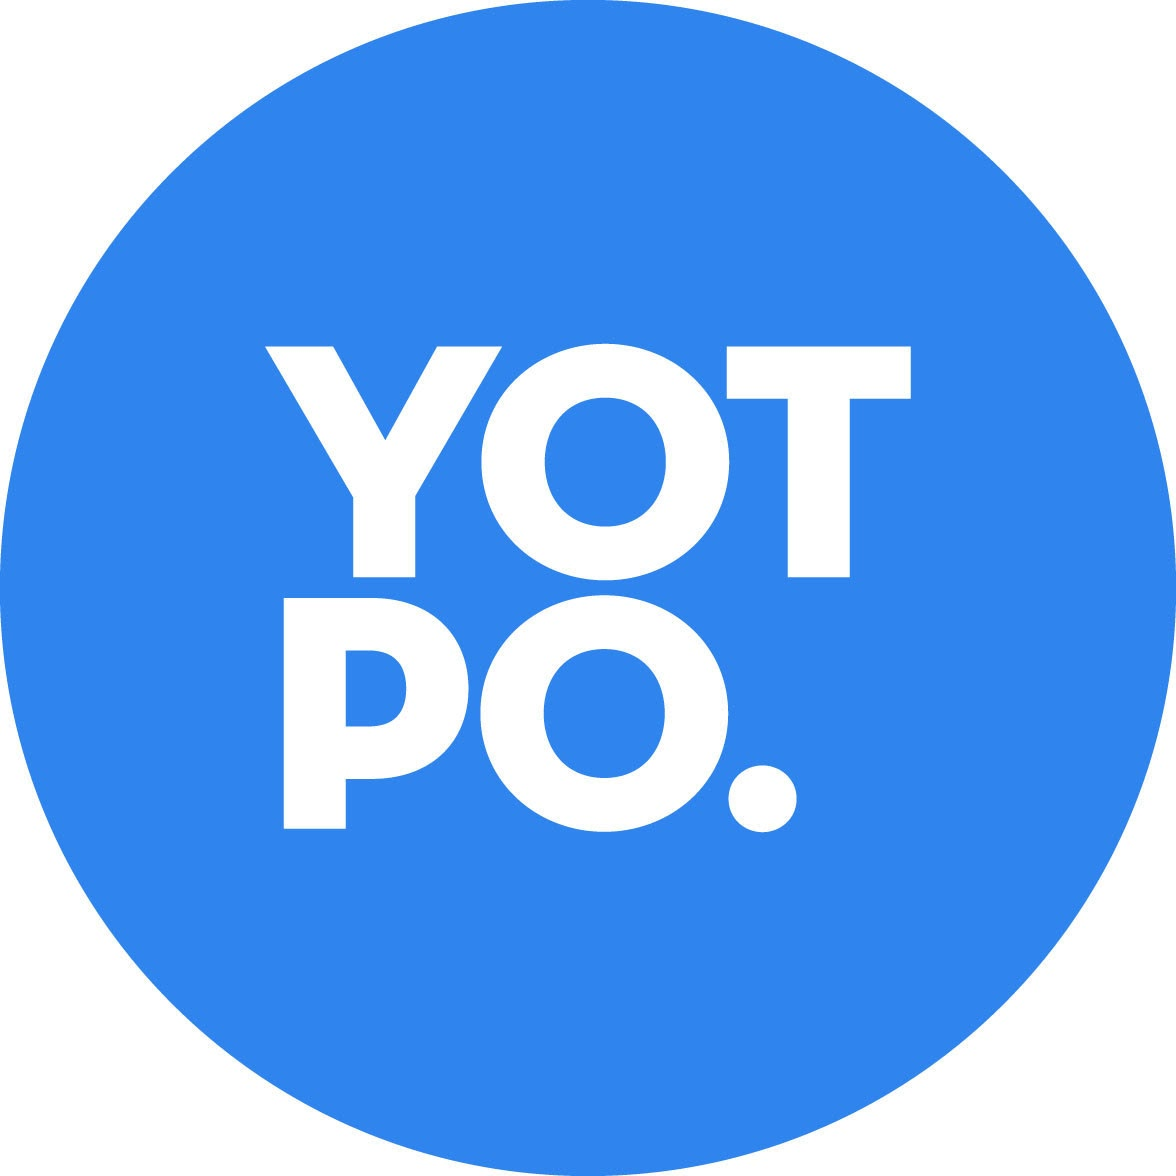 Yotpo - one of the best Shopify loyalty programs